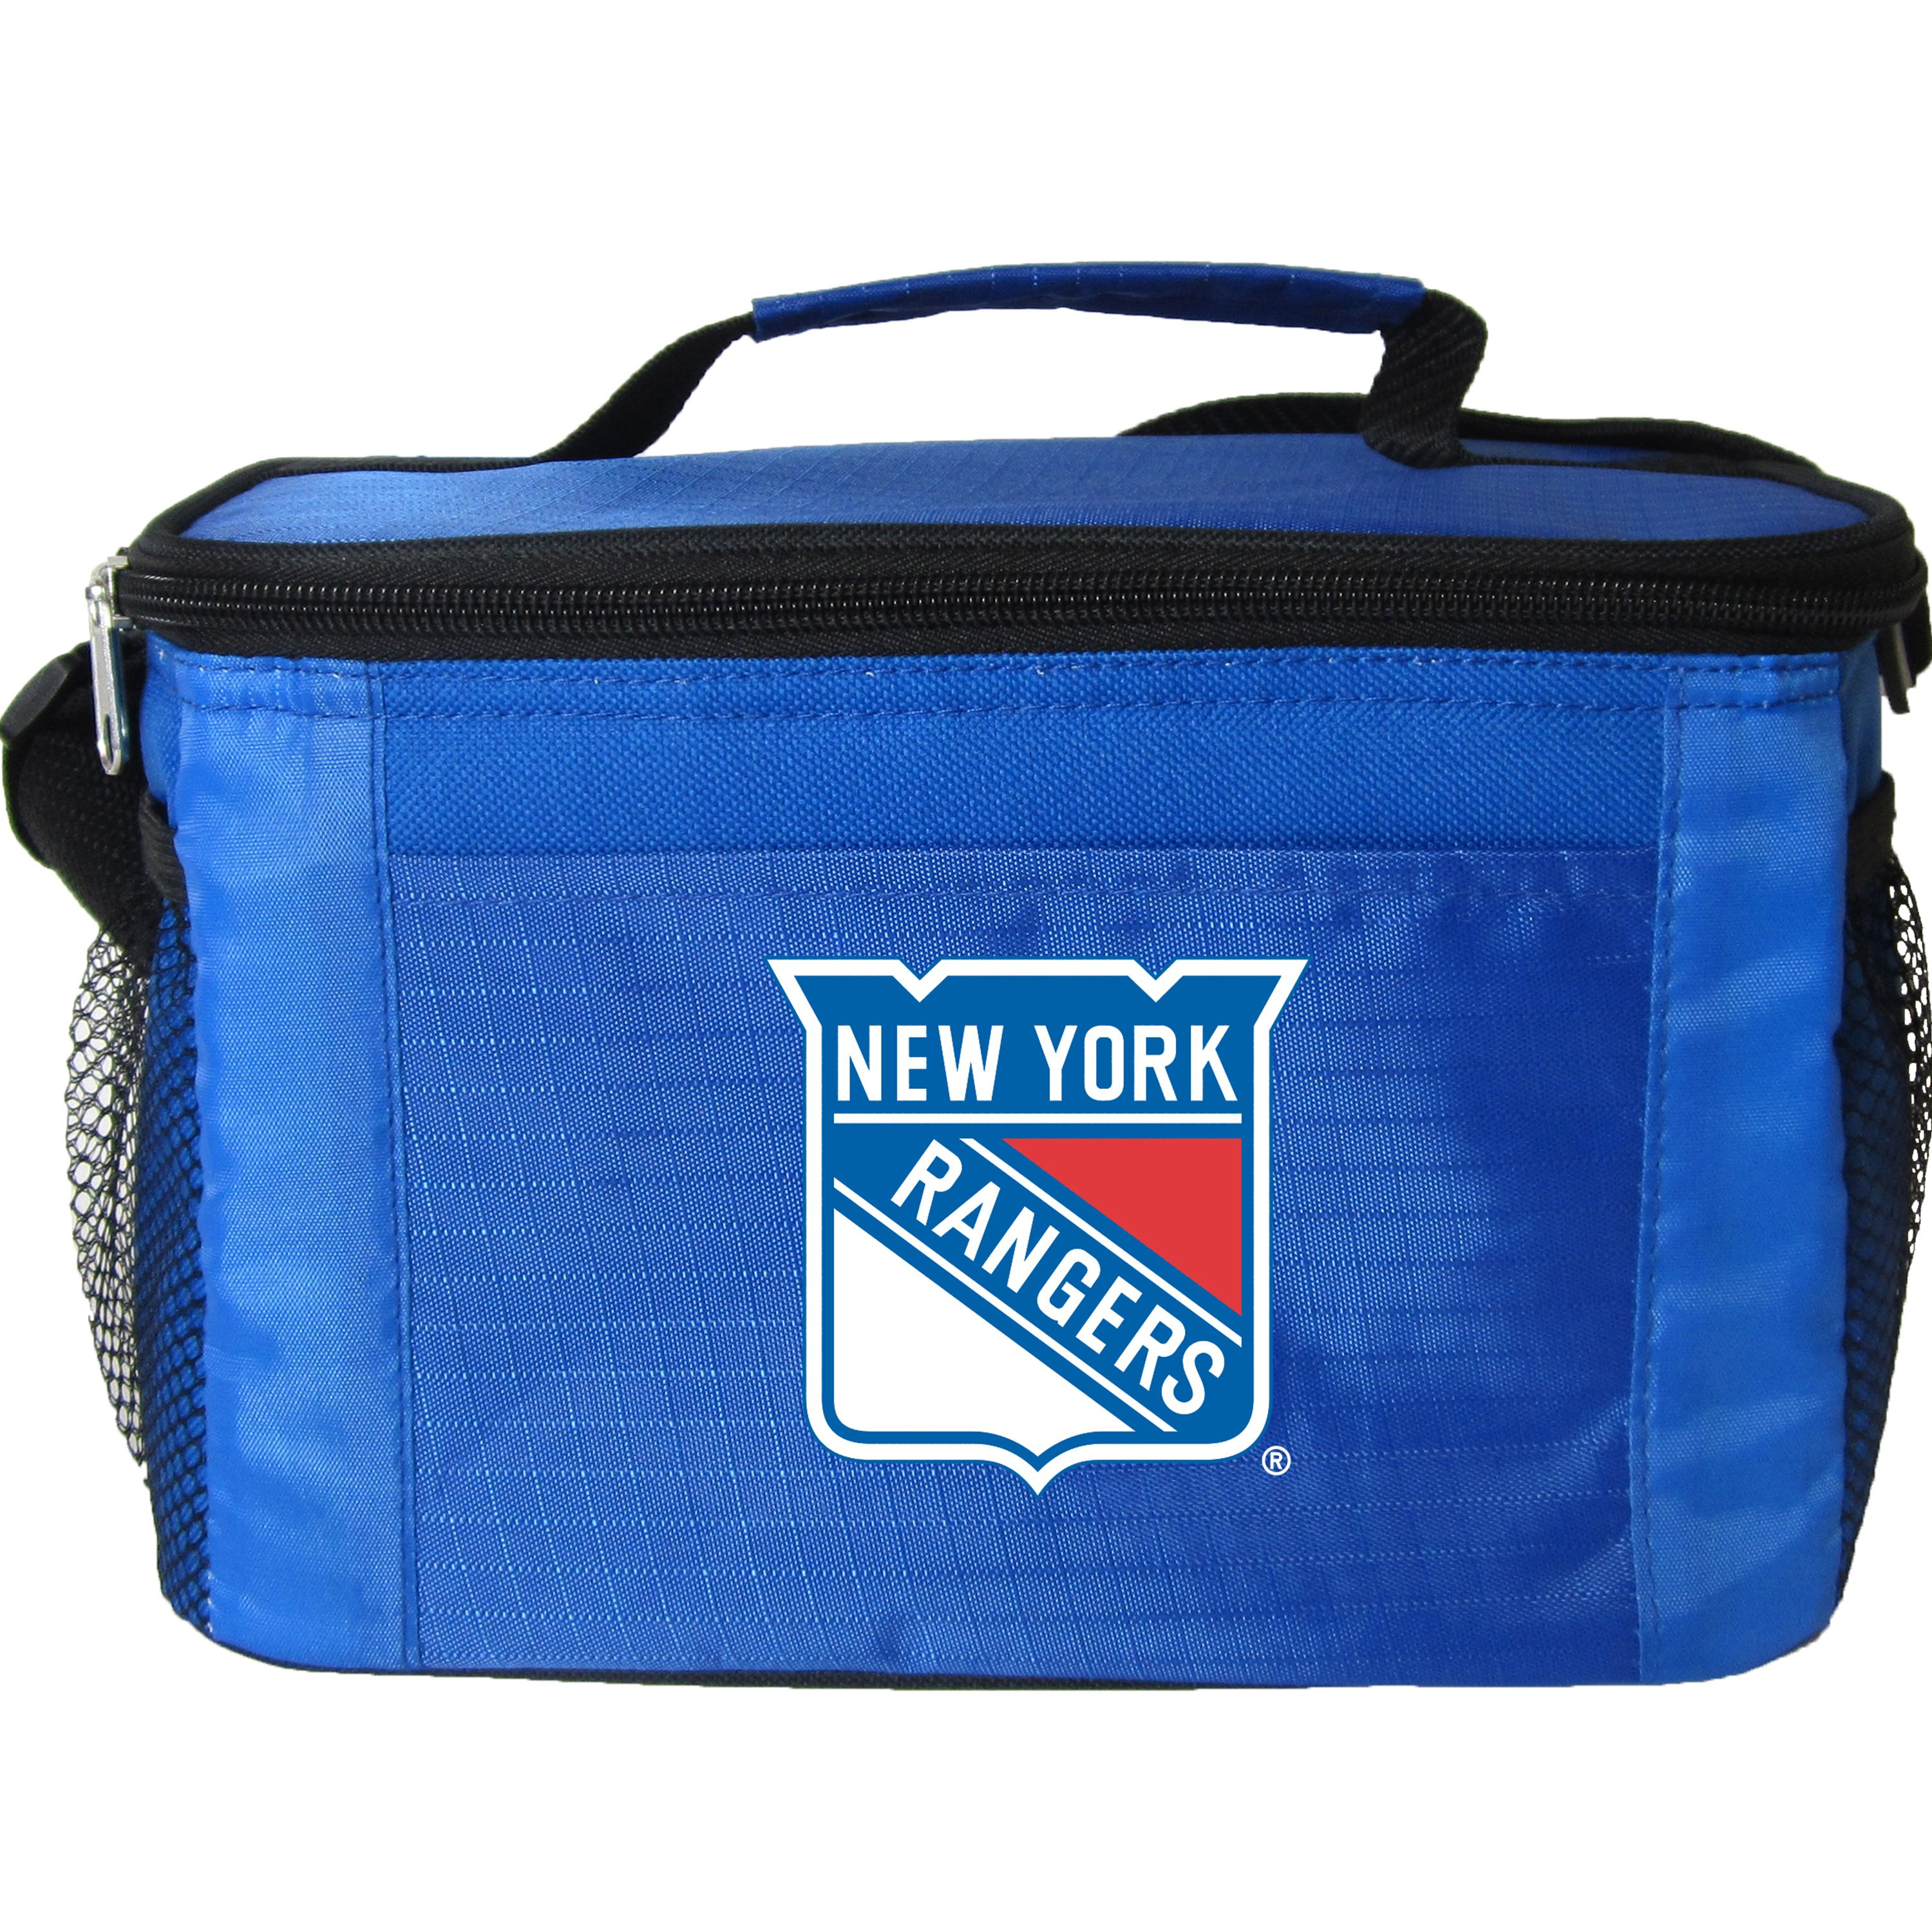 New York Rangers - 6pk Cooler Bag